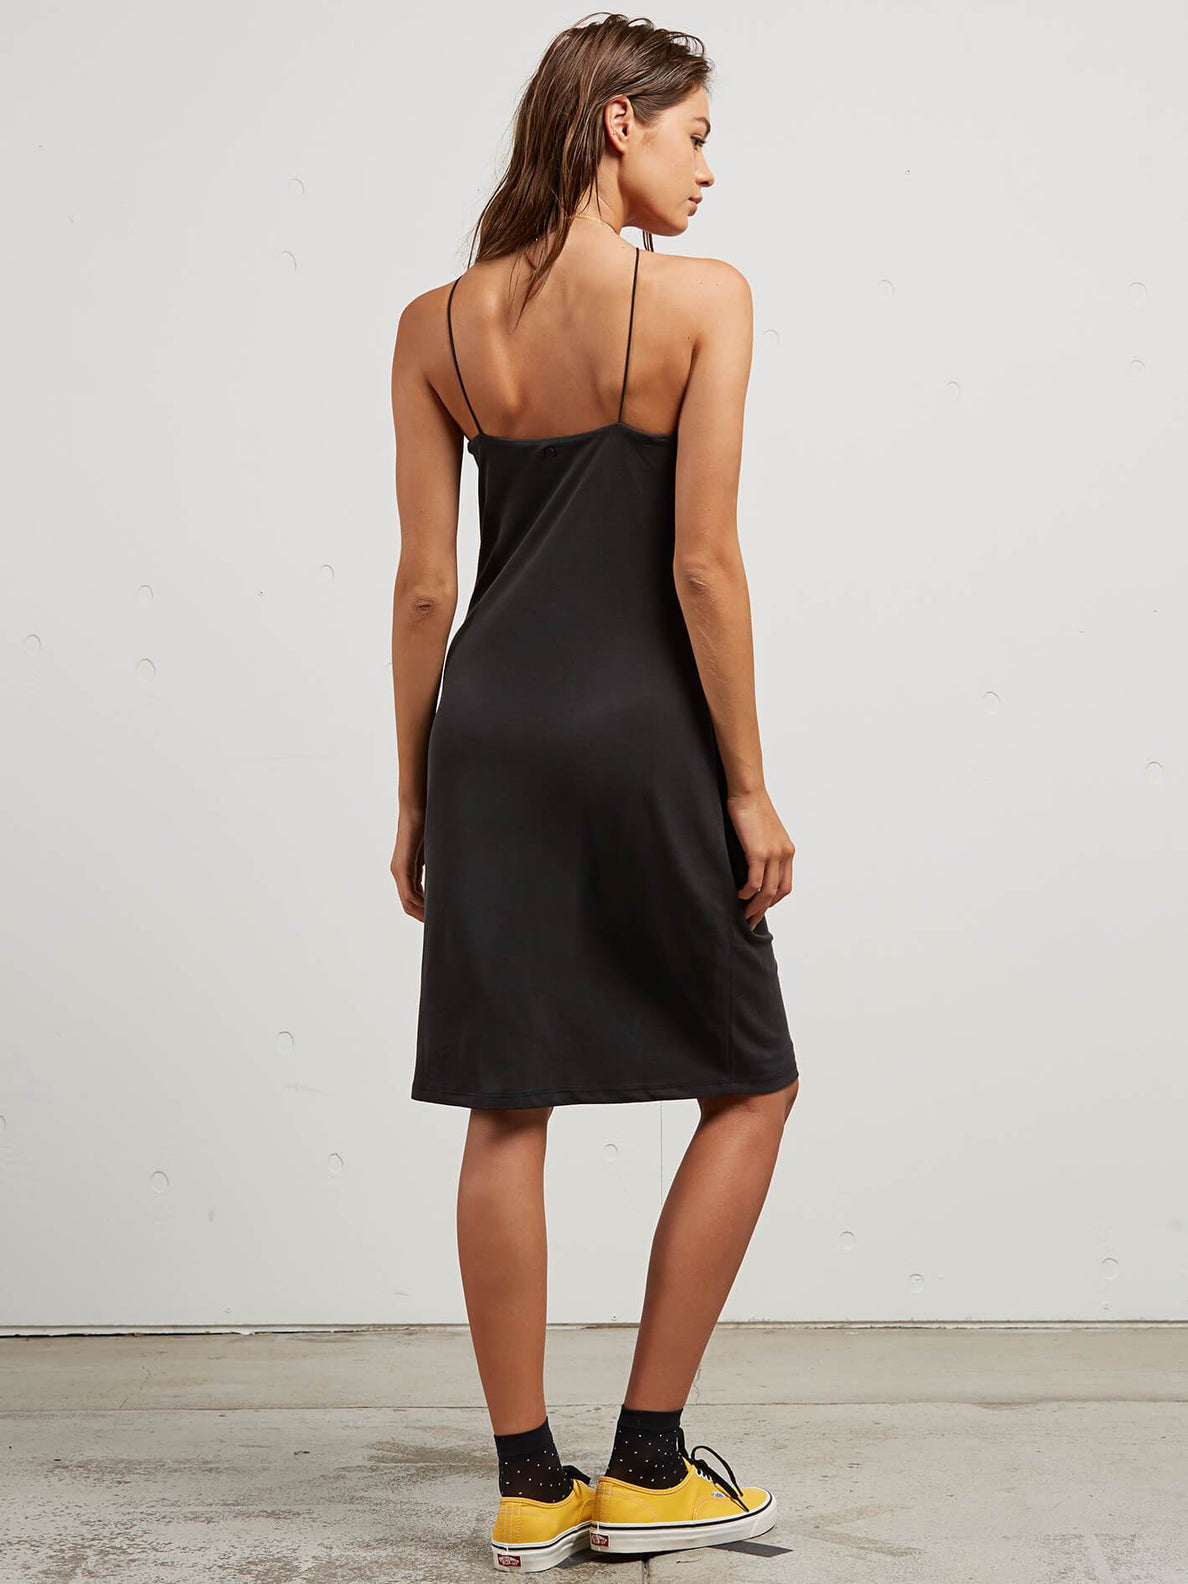 Mojo Dojo Dress In Black, Back View